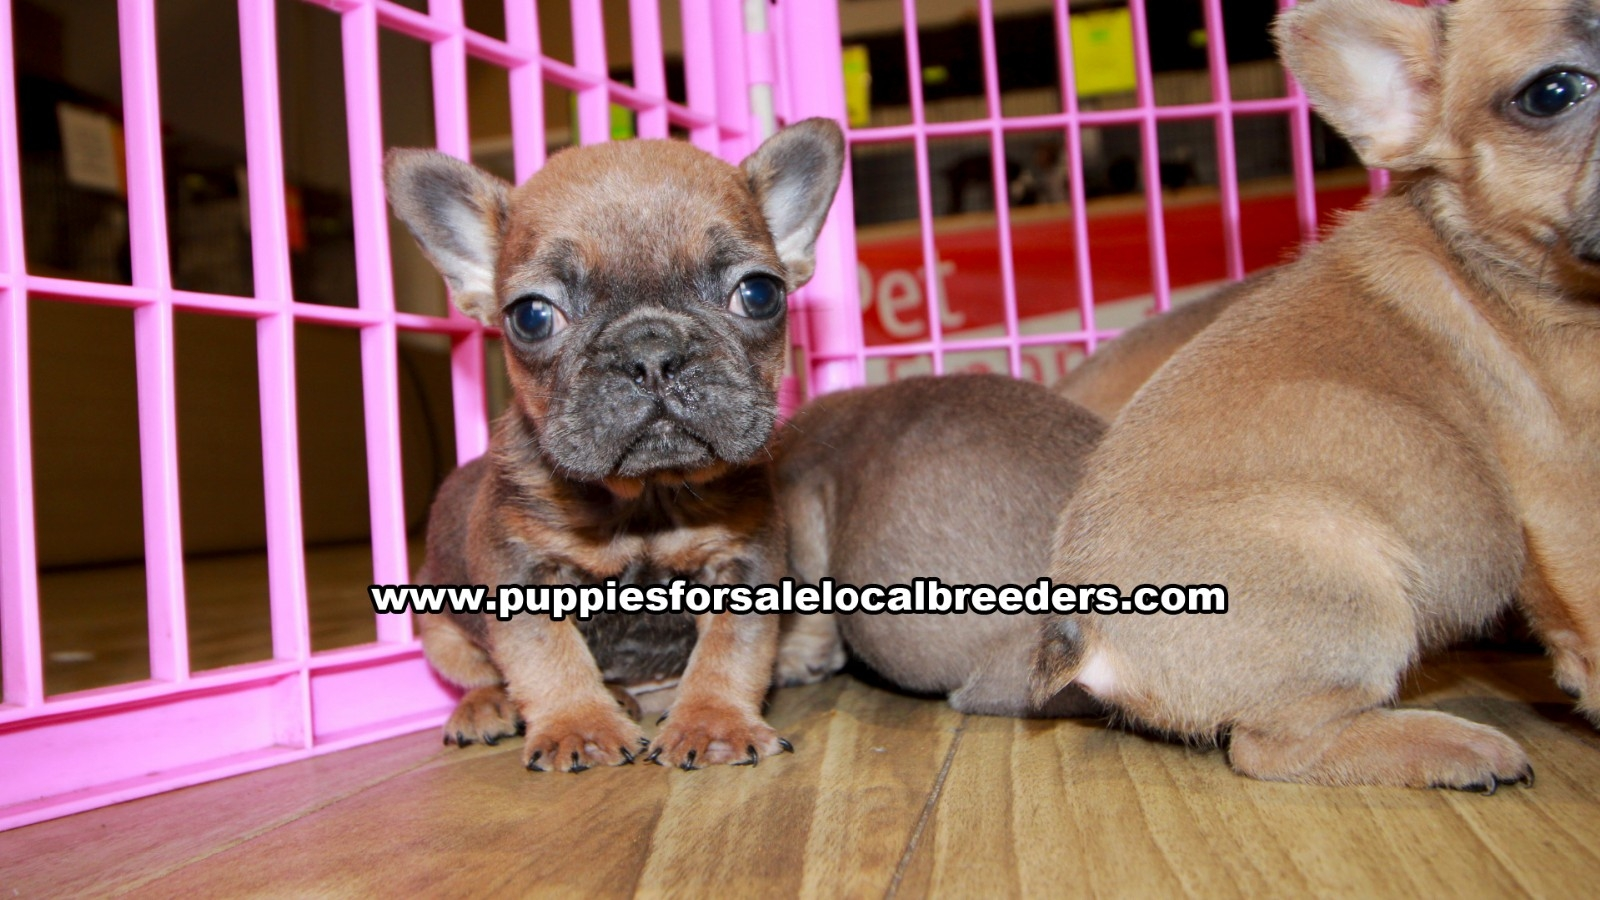 Blue Fawn French Bulldog, Puppies For Sale In Georgia, Local Breeders, Near Atlanta, Ga